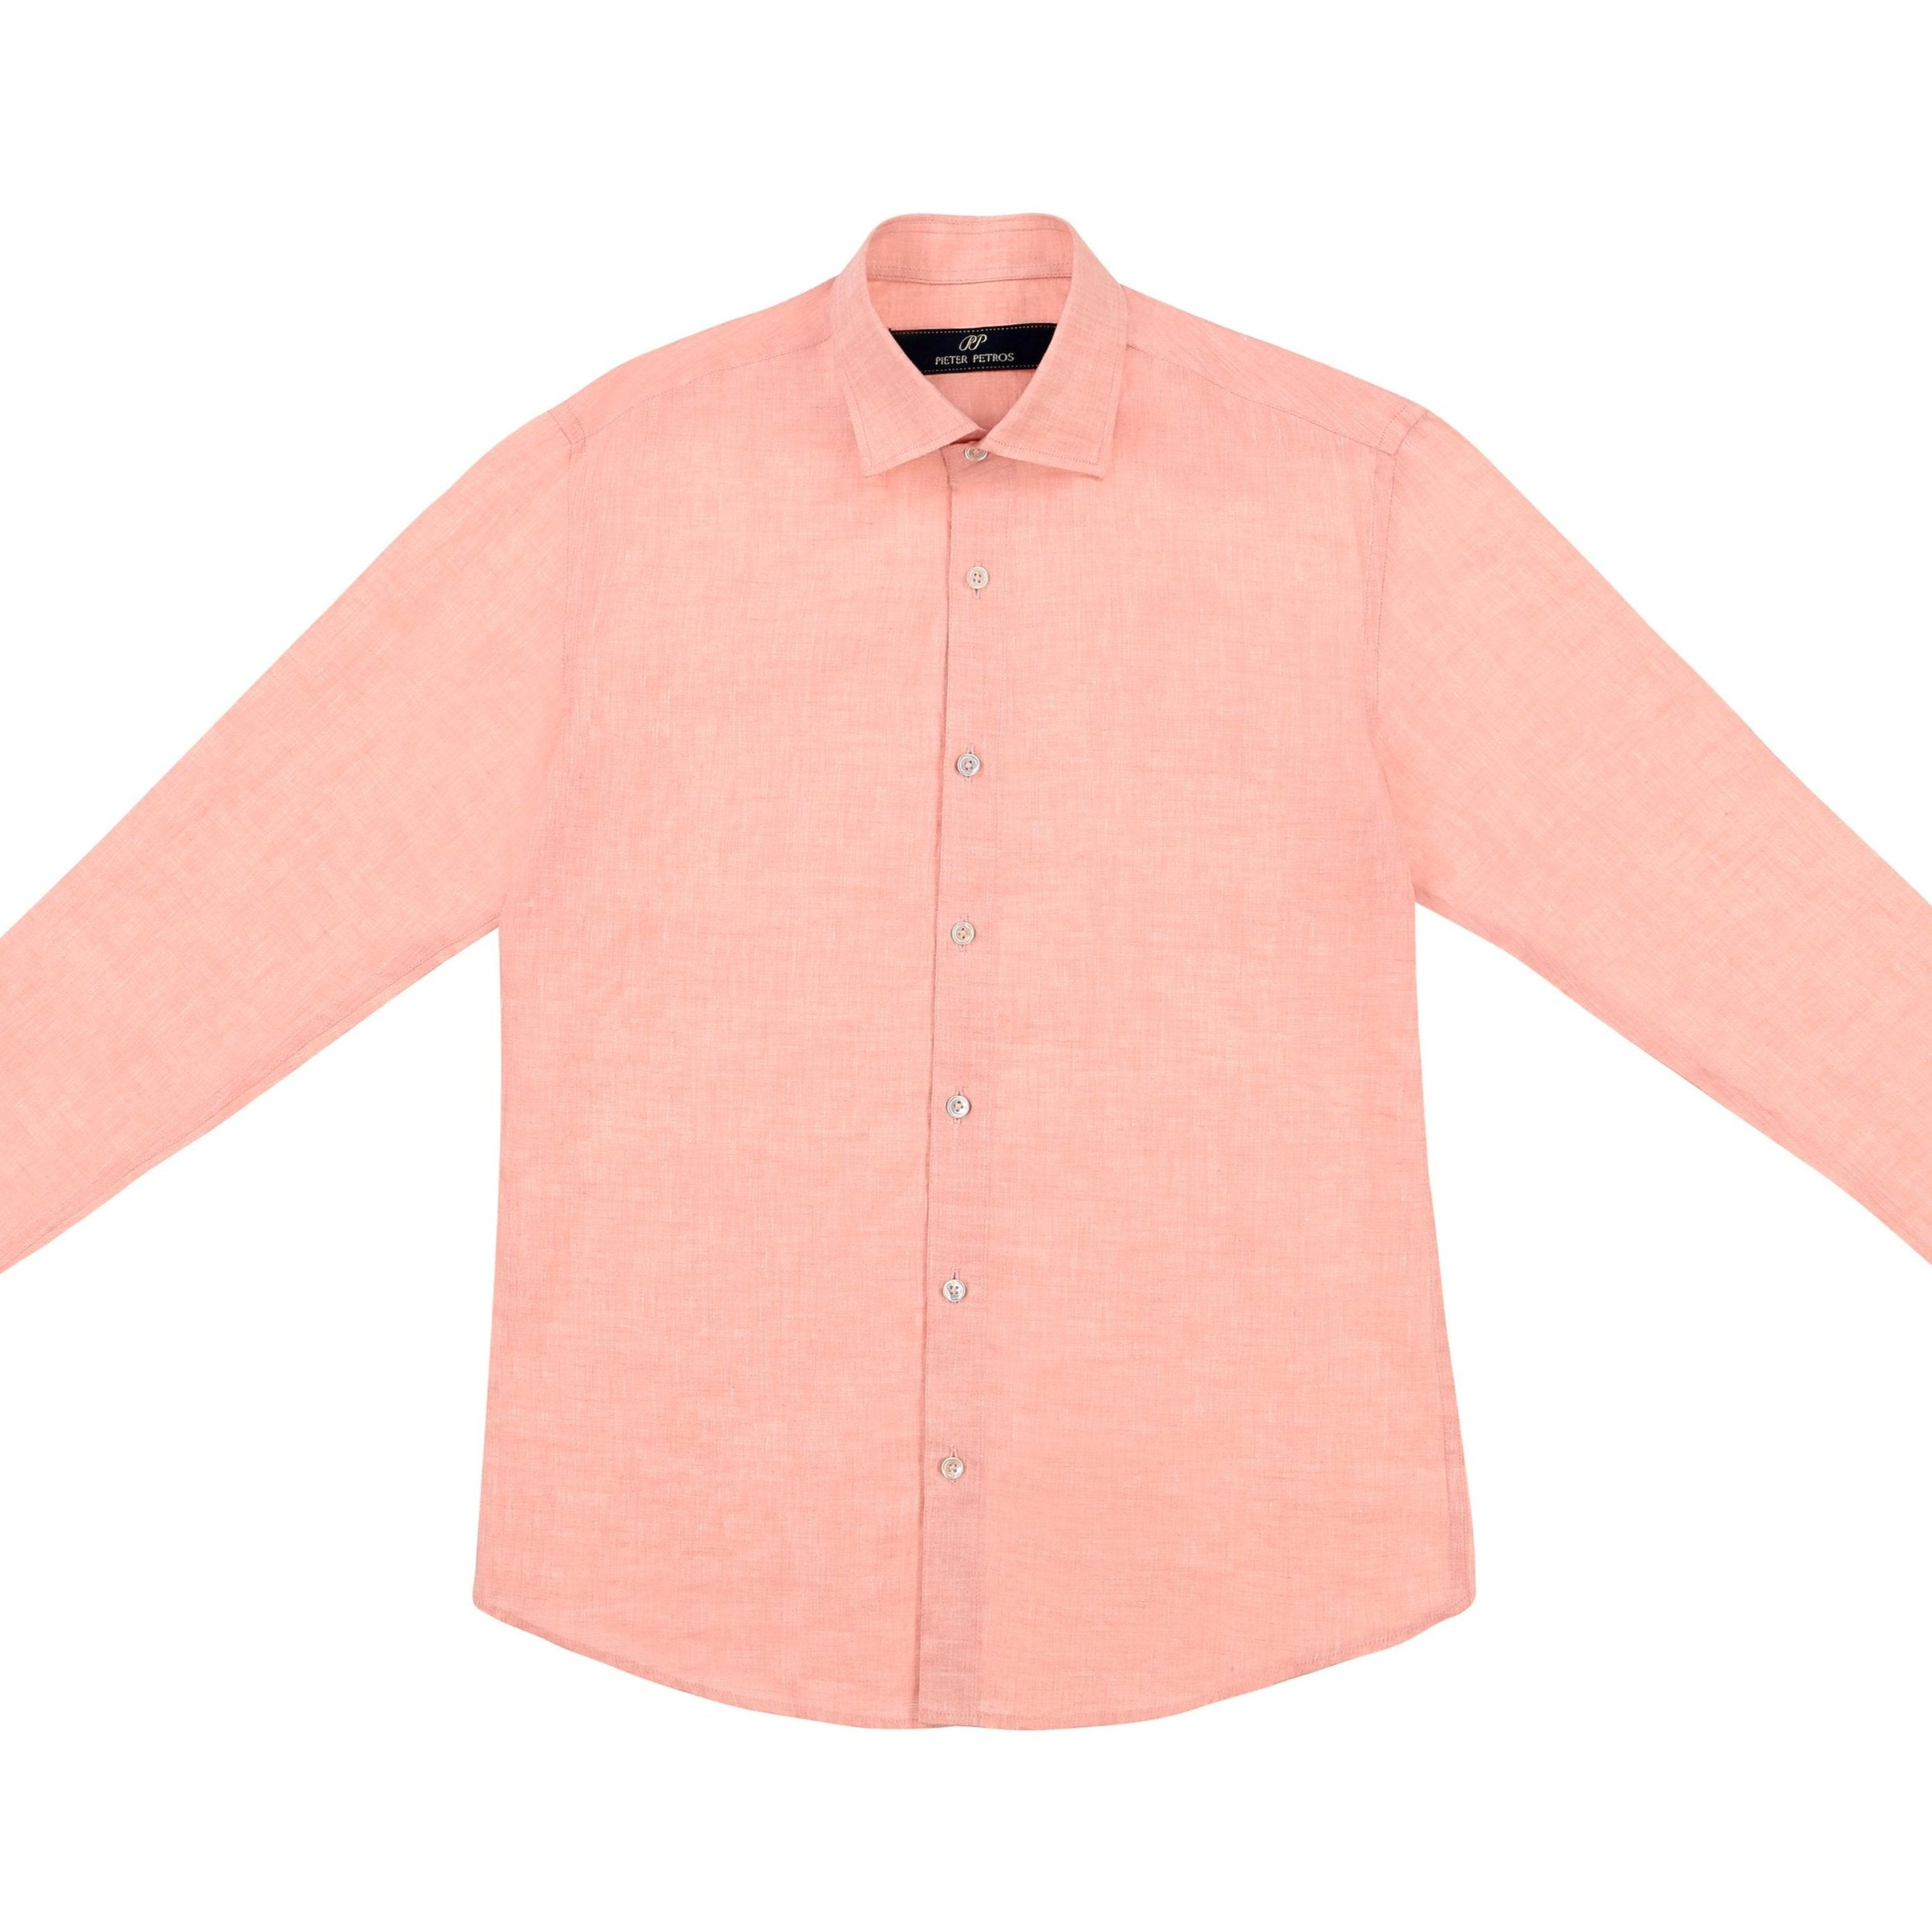 Laos Linen Shirt - Orange - PIETER PETROS ® STORE